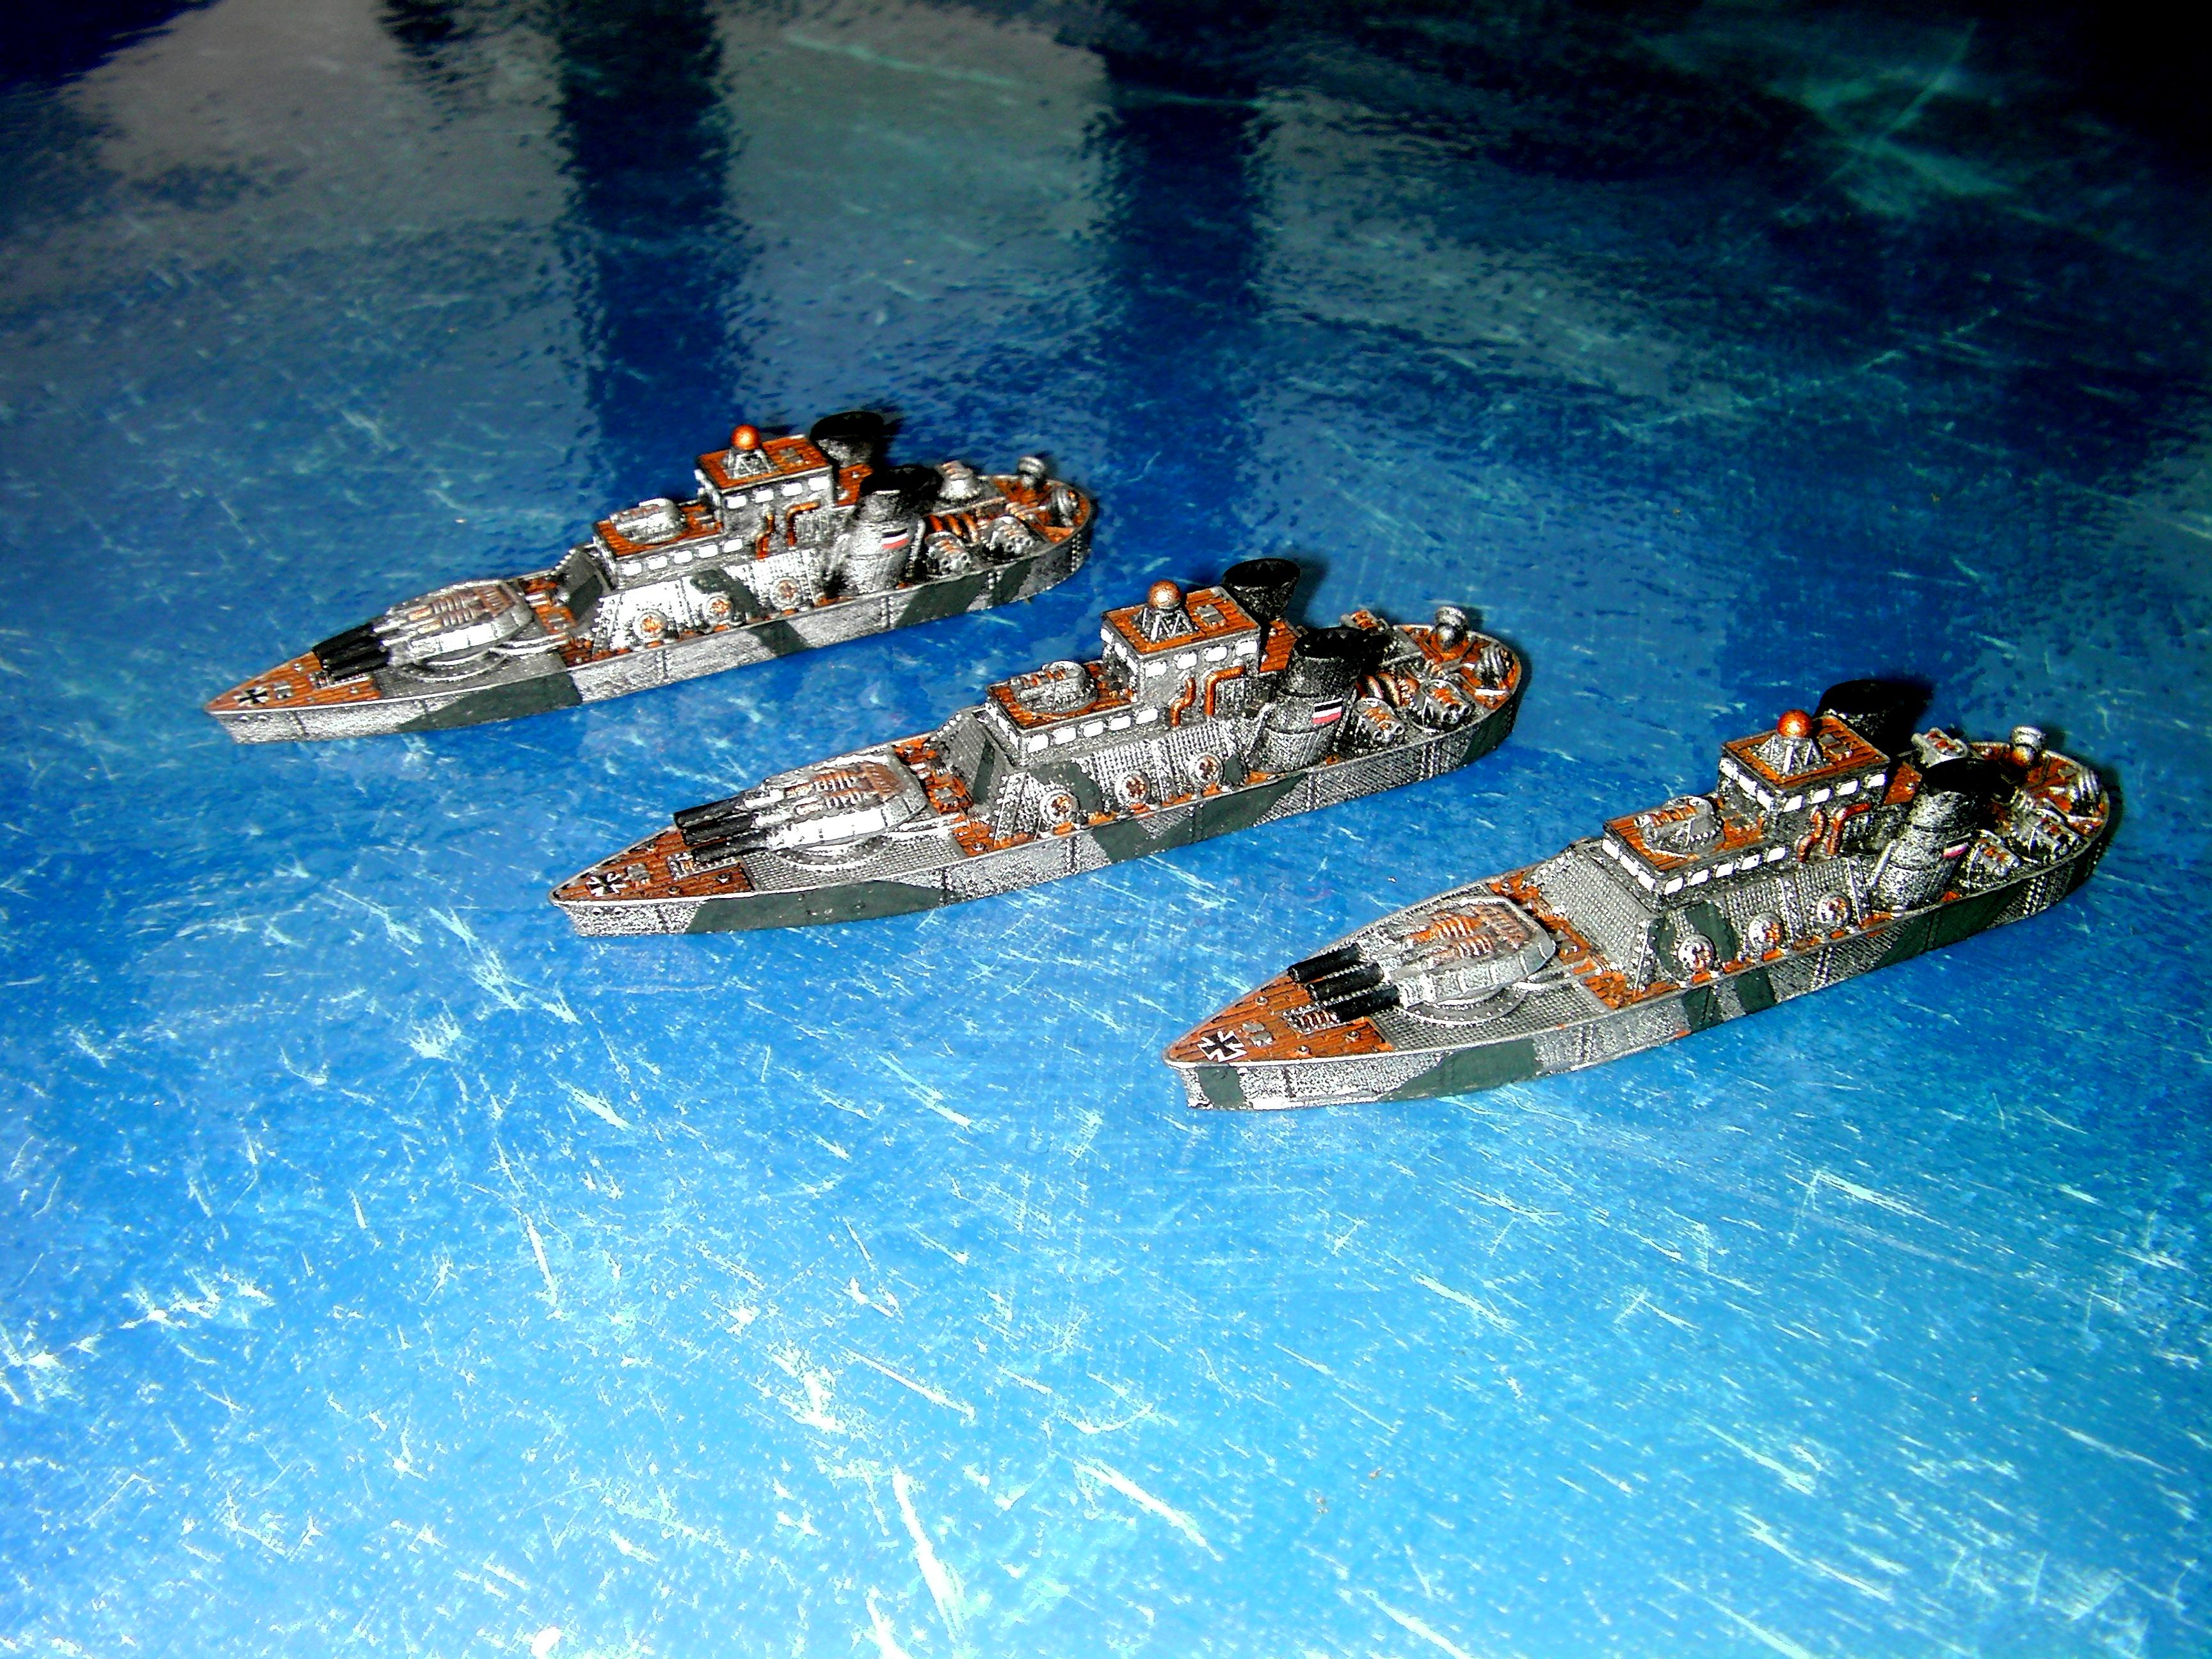 Cruiser, Dystopia, Dystopian, Dystopian Wars, Dystopian-wars, Fleets, German Cruiser, Germans, Kingdom Of Prussian, Prussian, Prussian Cruiser, Reiver, Reiver Class, Sailing, Ships, Spartan Games, War